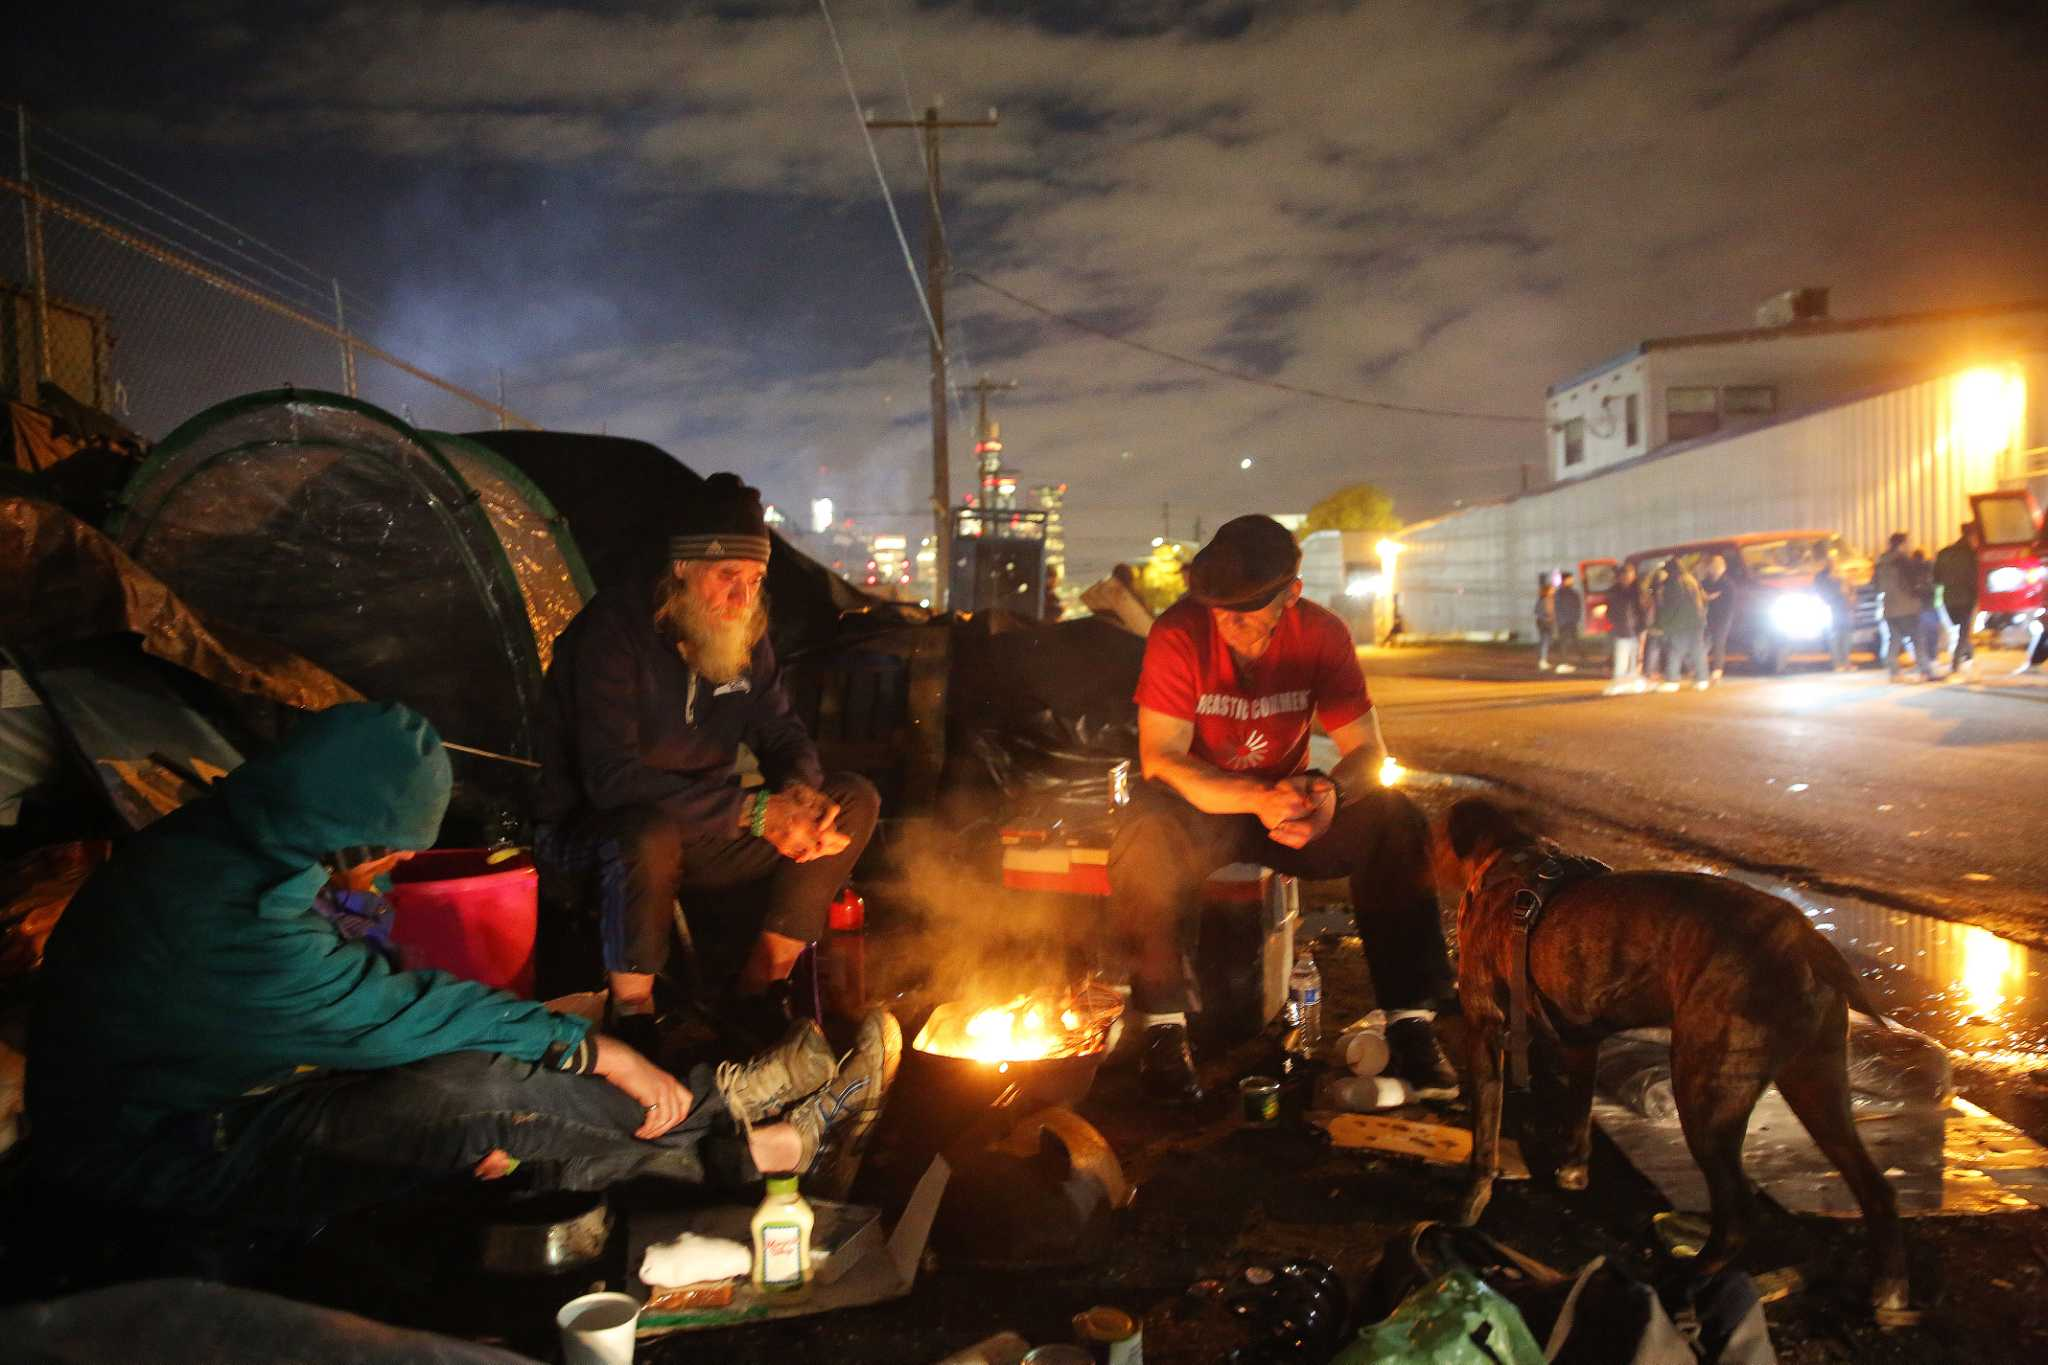 Proposal to create regional homelessness authority moves forward